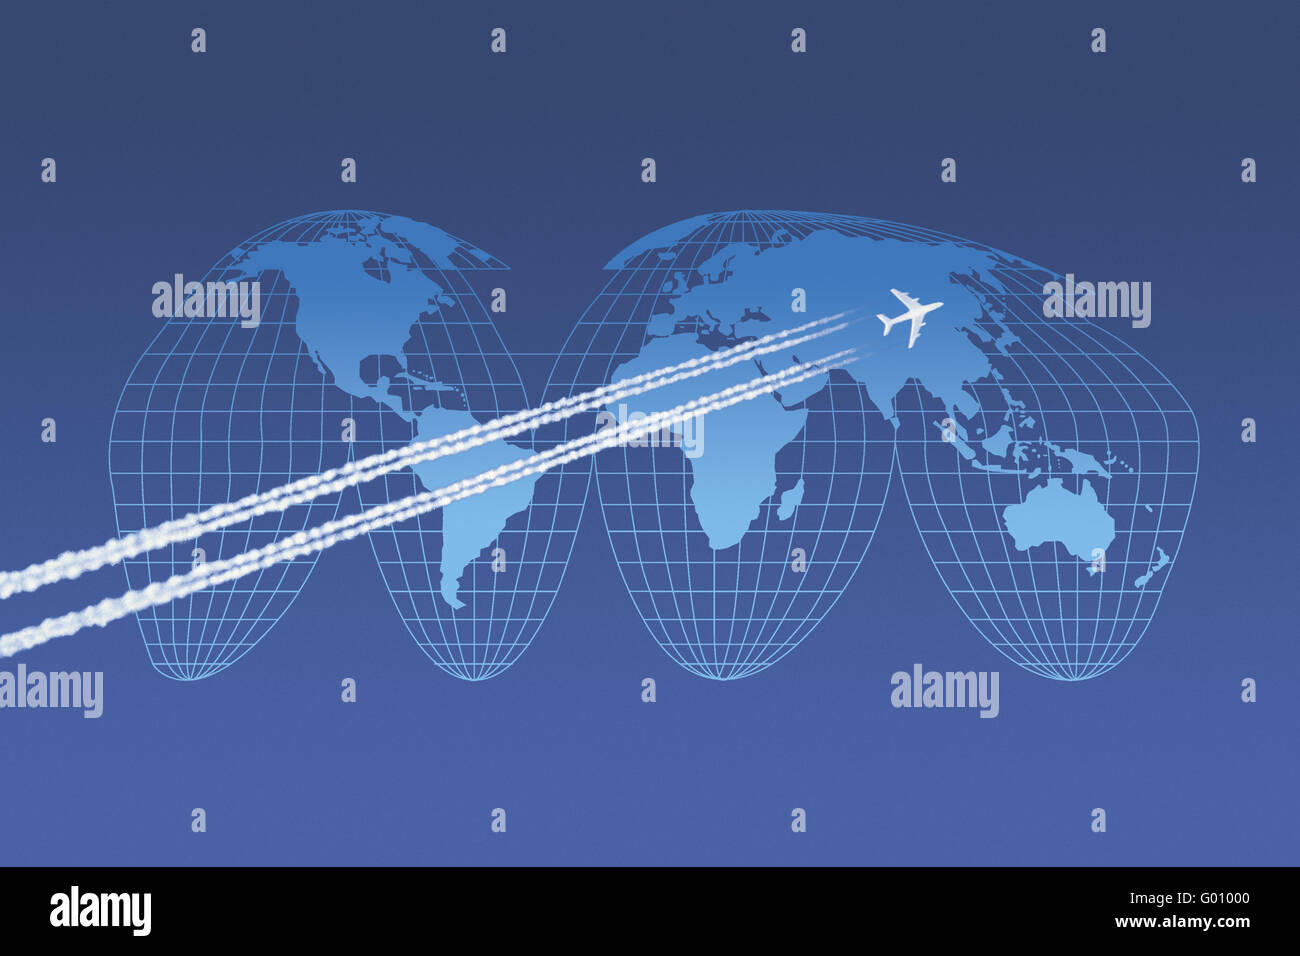 Aircraft in front of a world map in Goode-Projection - Stock Image